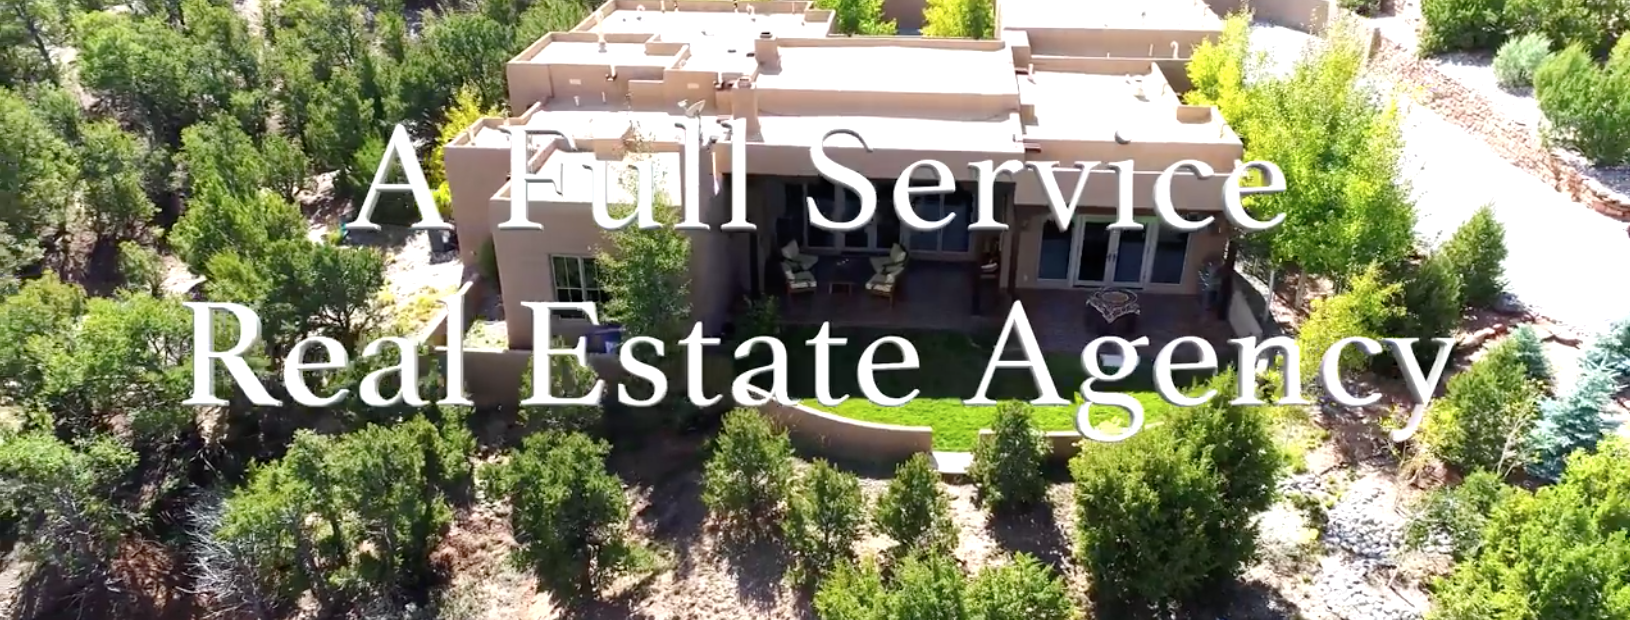 Select Santa Fe Real Estate - real estate cover photos - tips from the pros